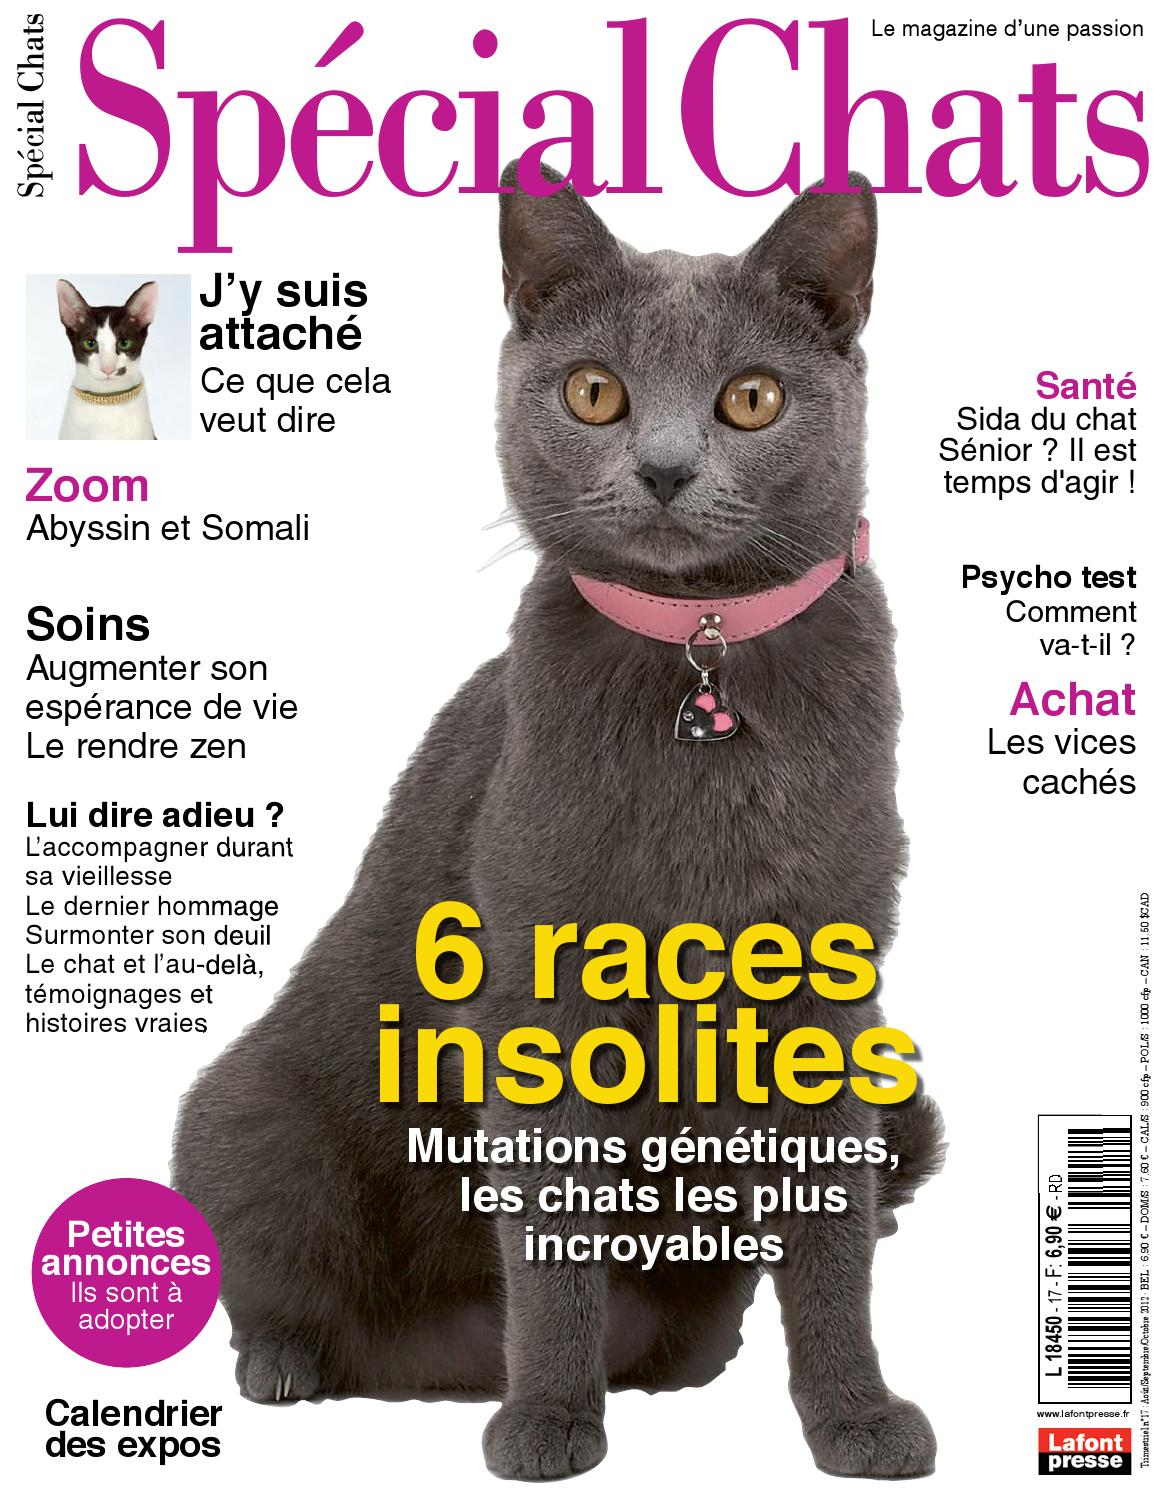 poilu chattes tube